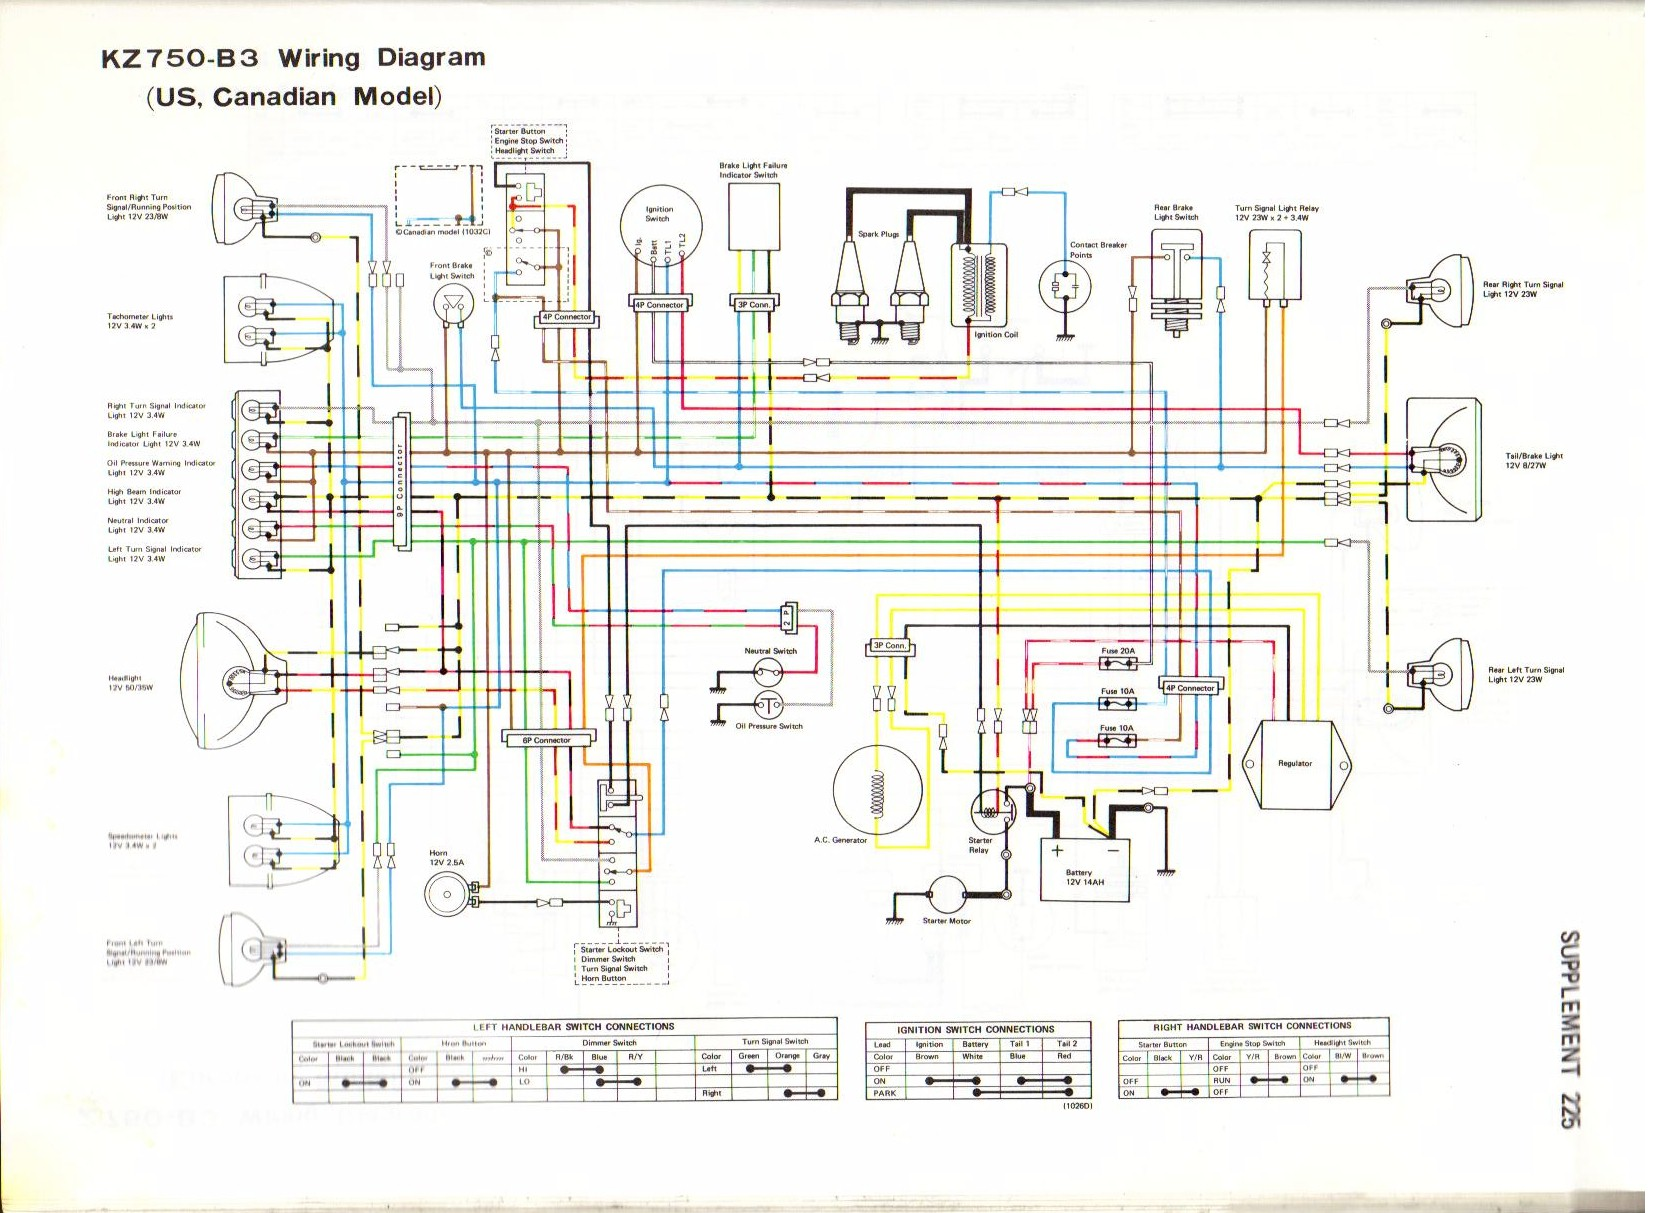 Kz750 Wiring Diagram Everything About Ignition Warning Light Schematics Rh Ksefanzone Com 1979 1978